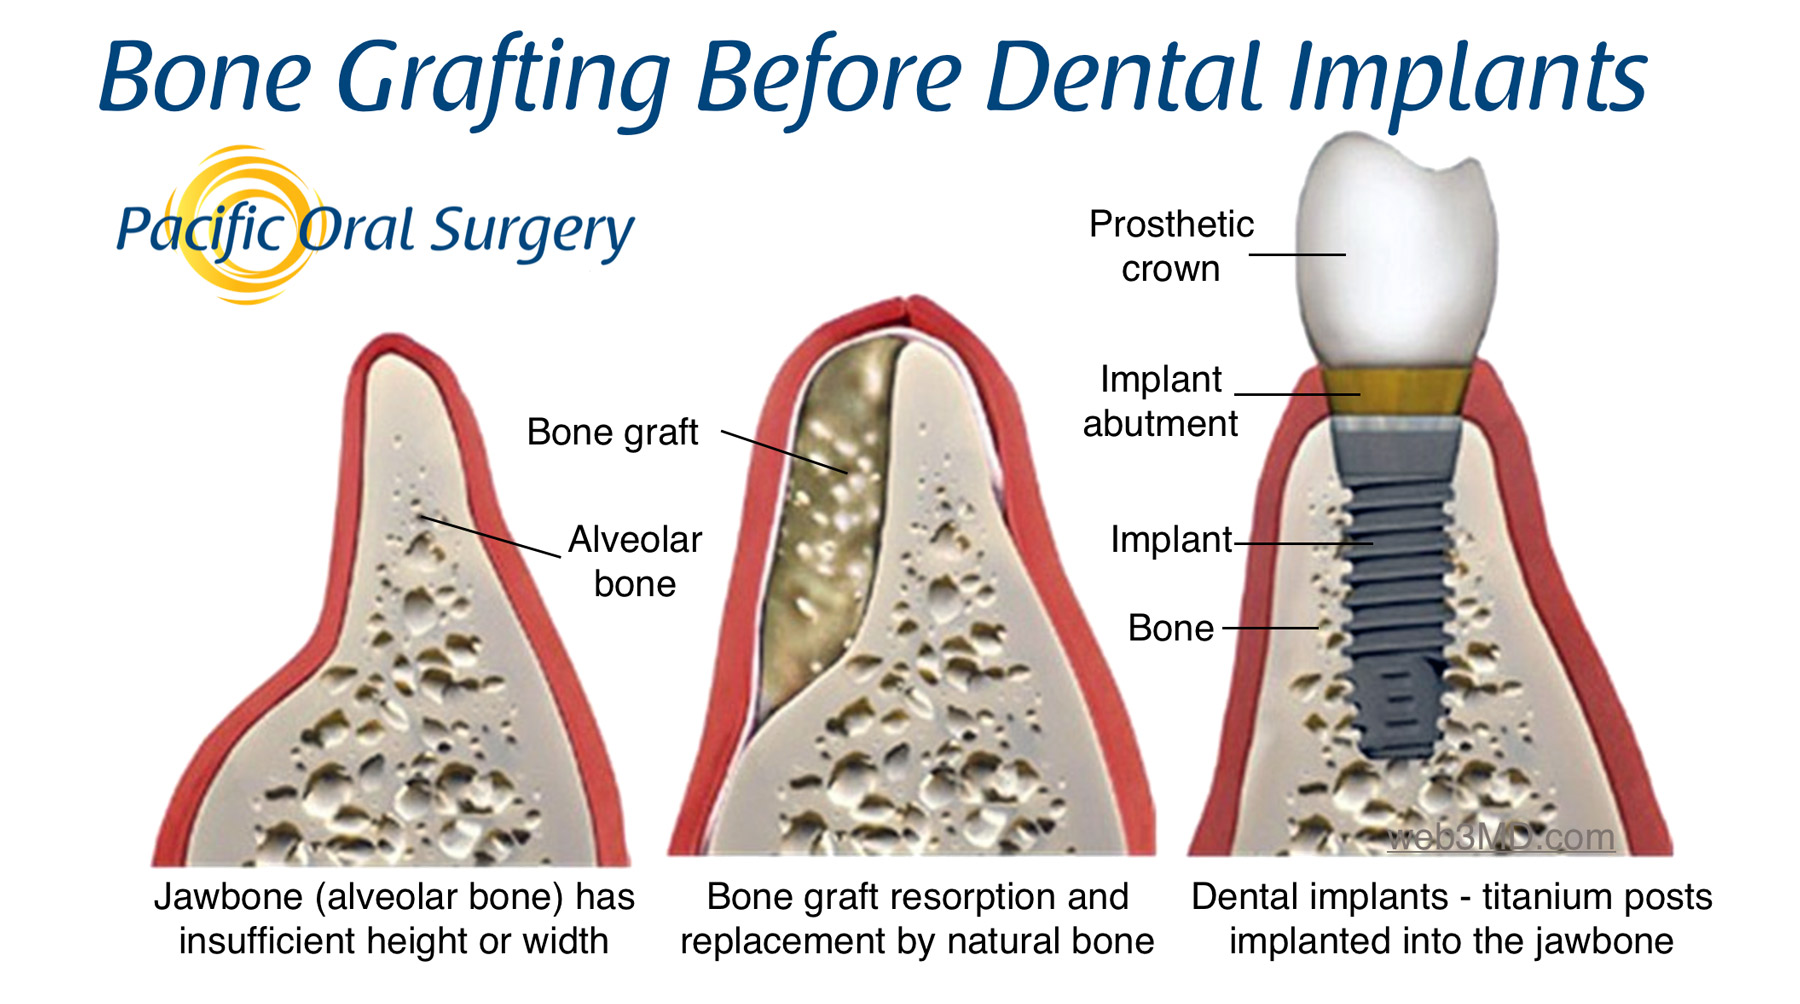 Bone Grafting for Dental Implants at Pacific Oral Surgery